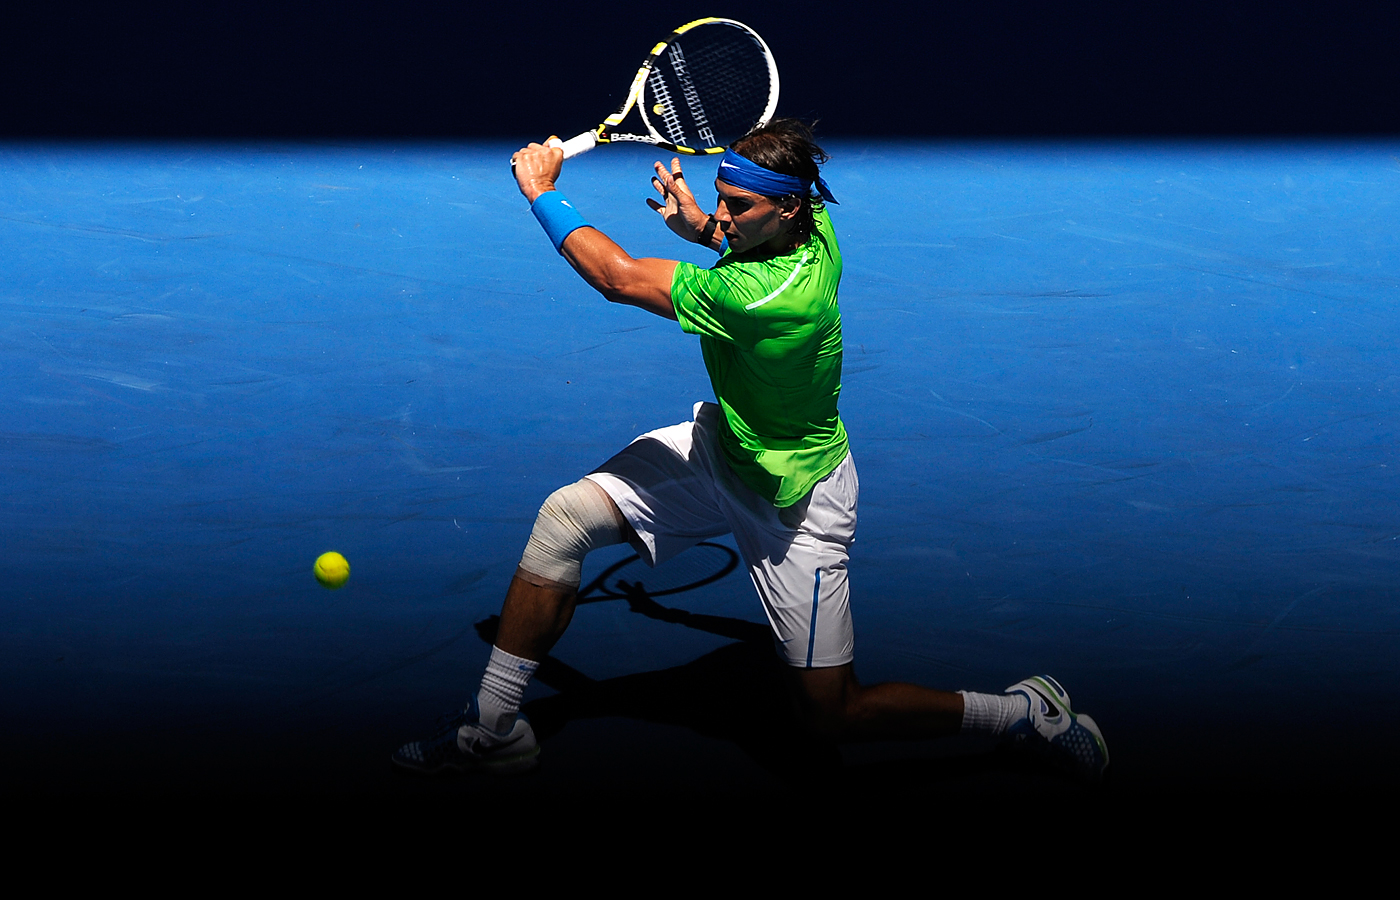 tennis hd photography